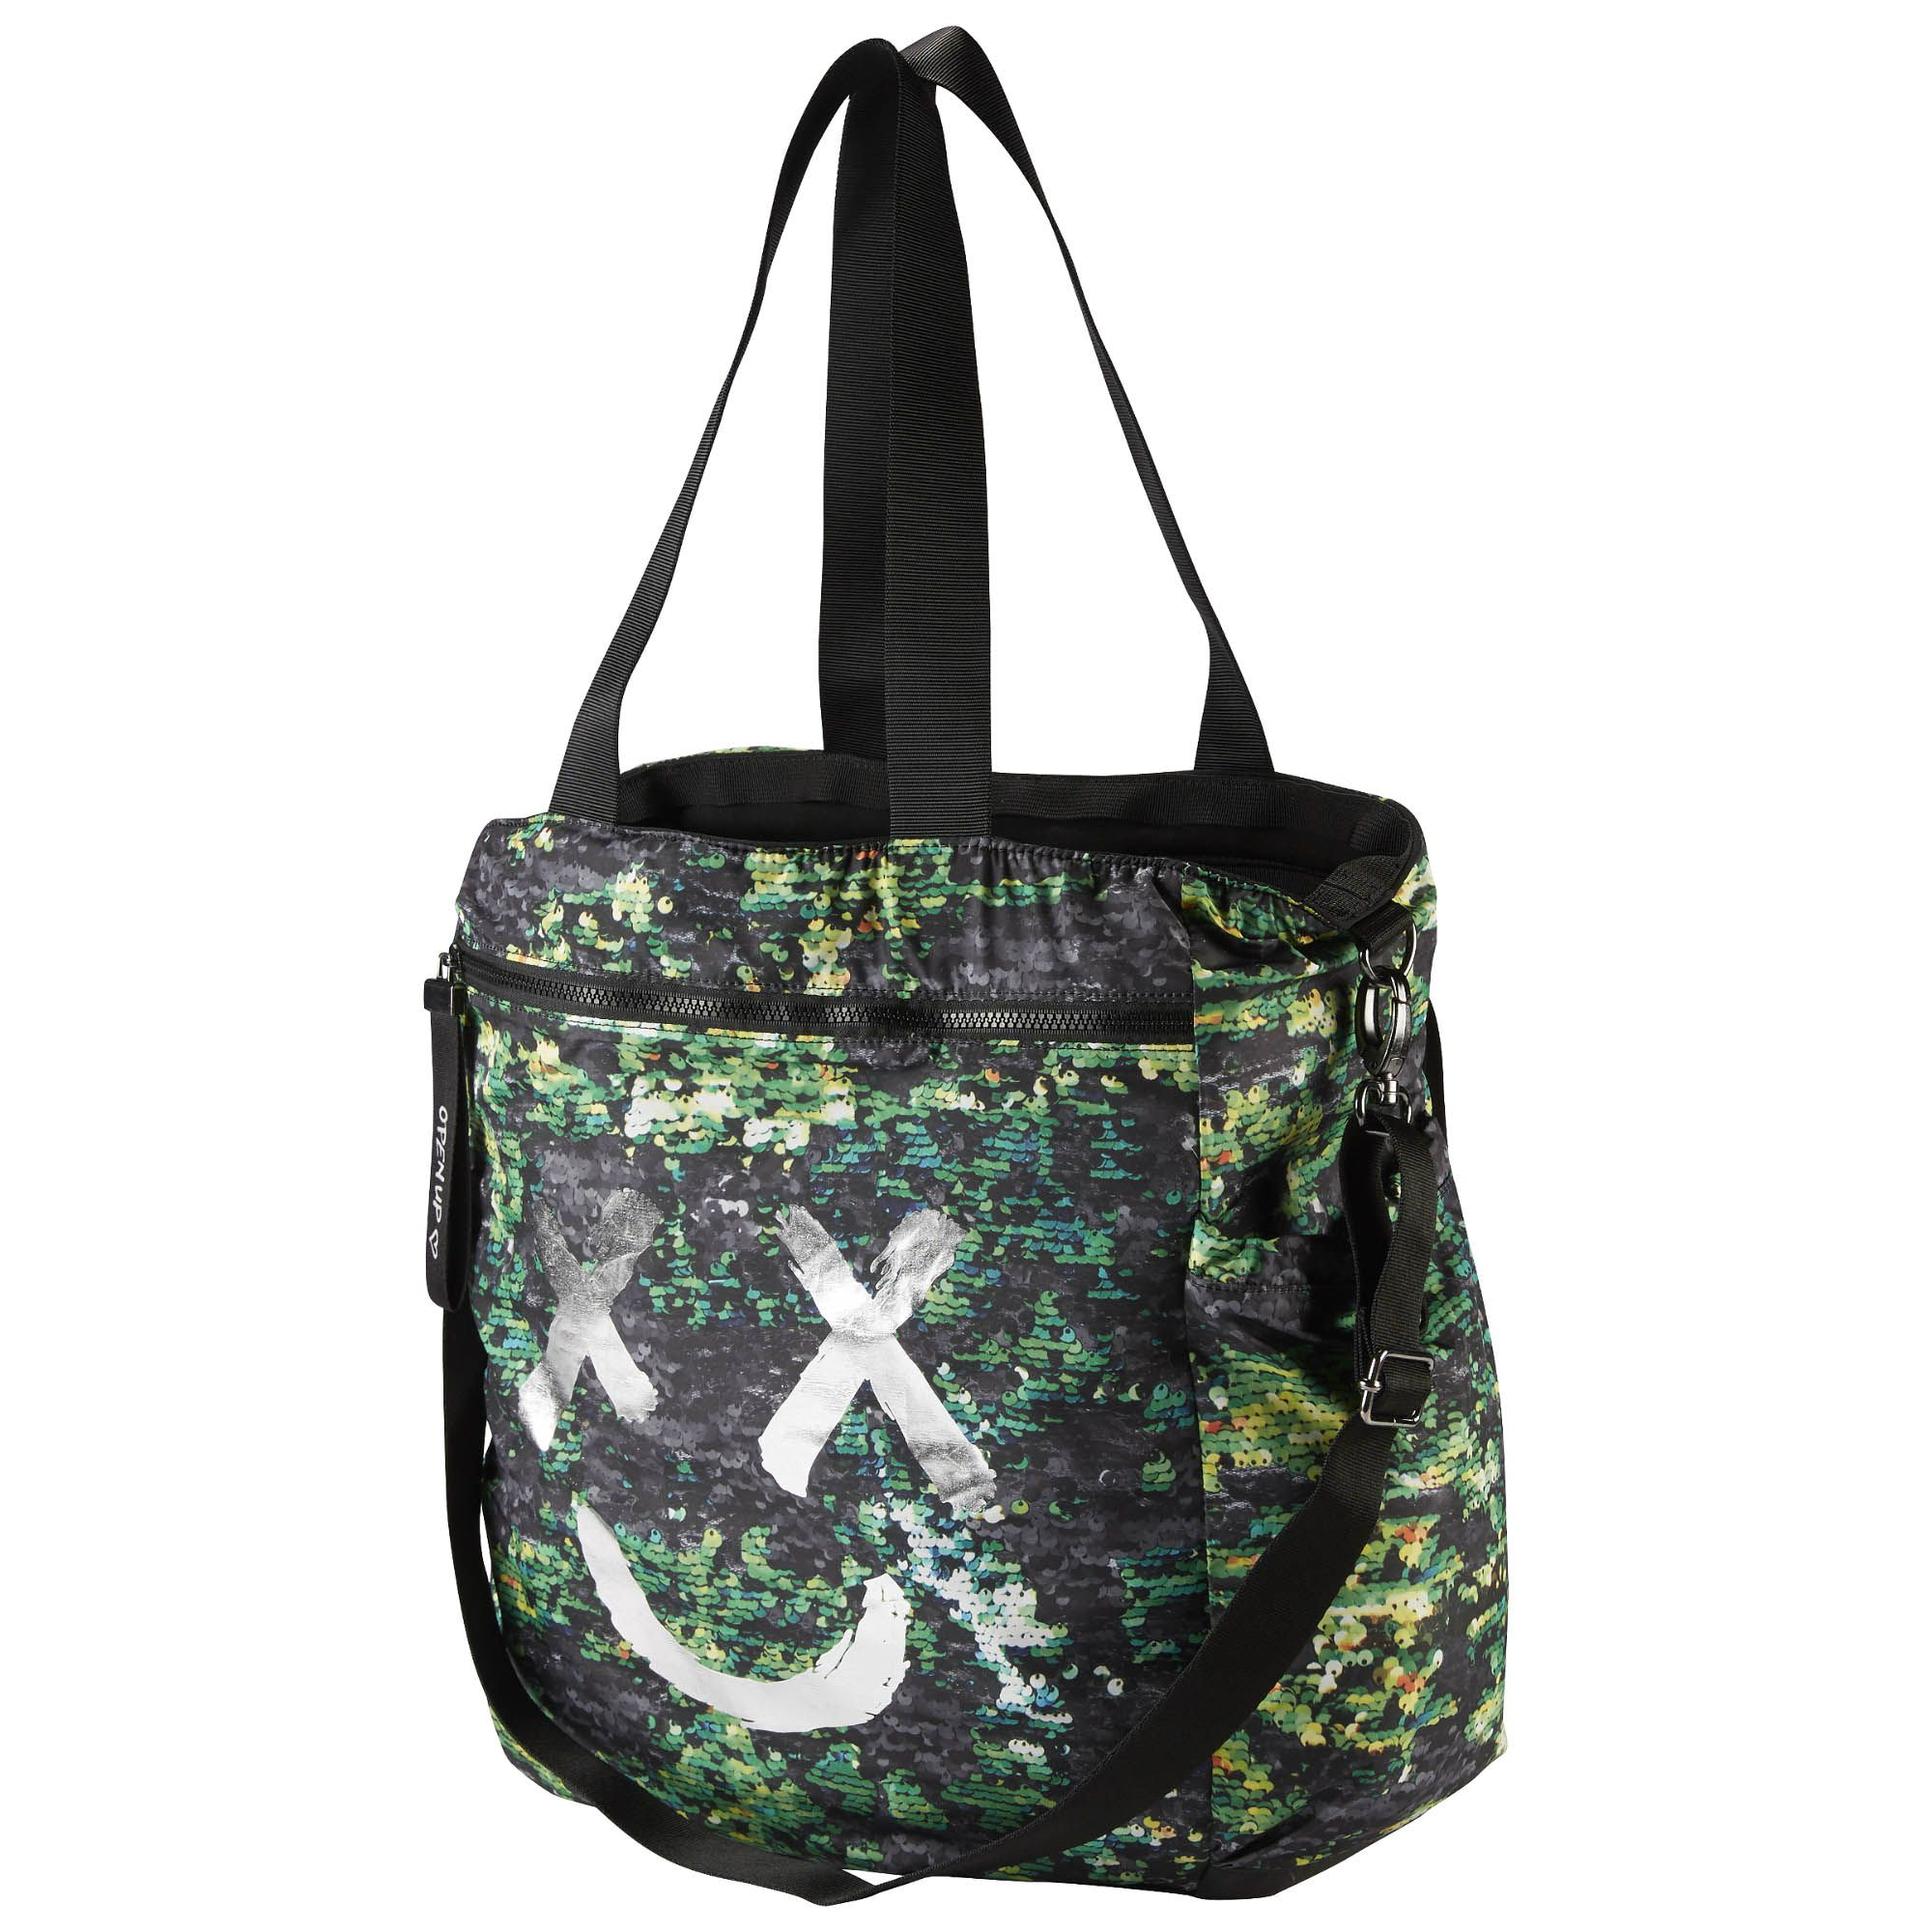 Inside out studio tote $110